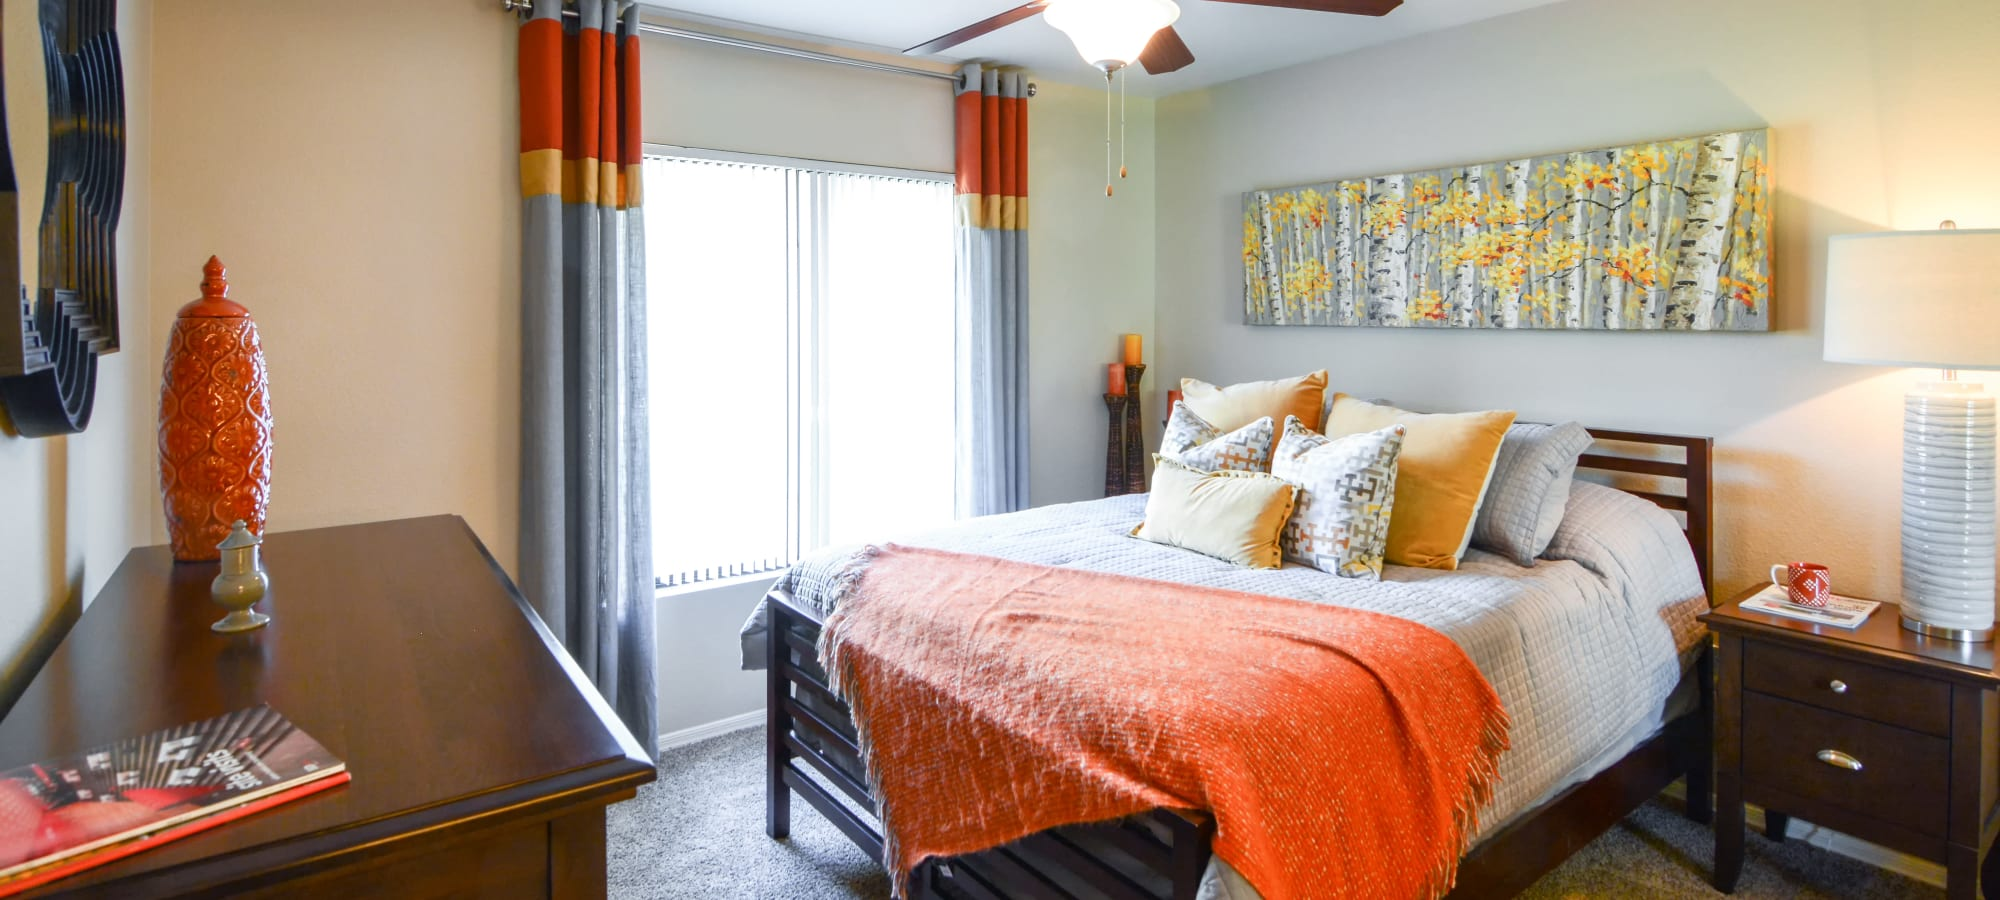 Orange and grey bedroom at The Palms on Scottsdale in Tempe, Arizona